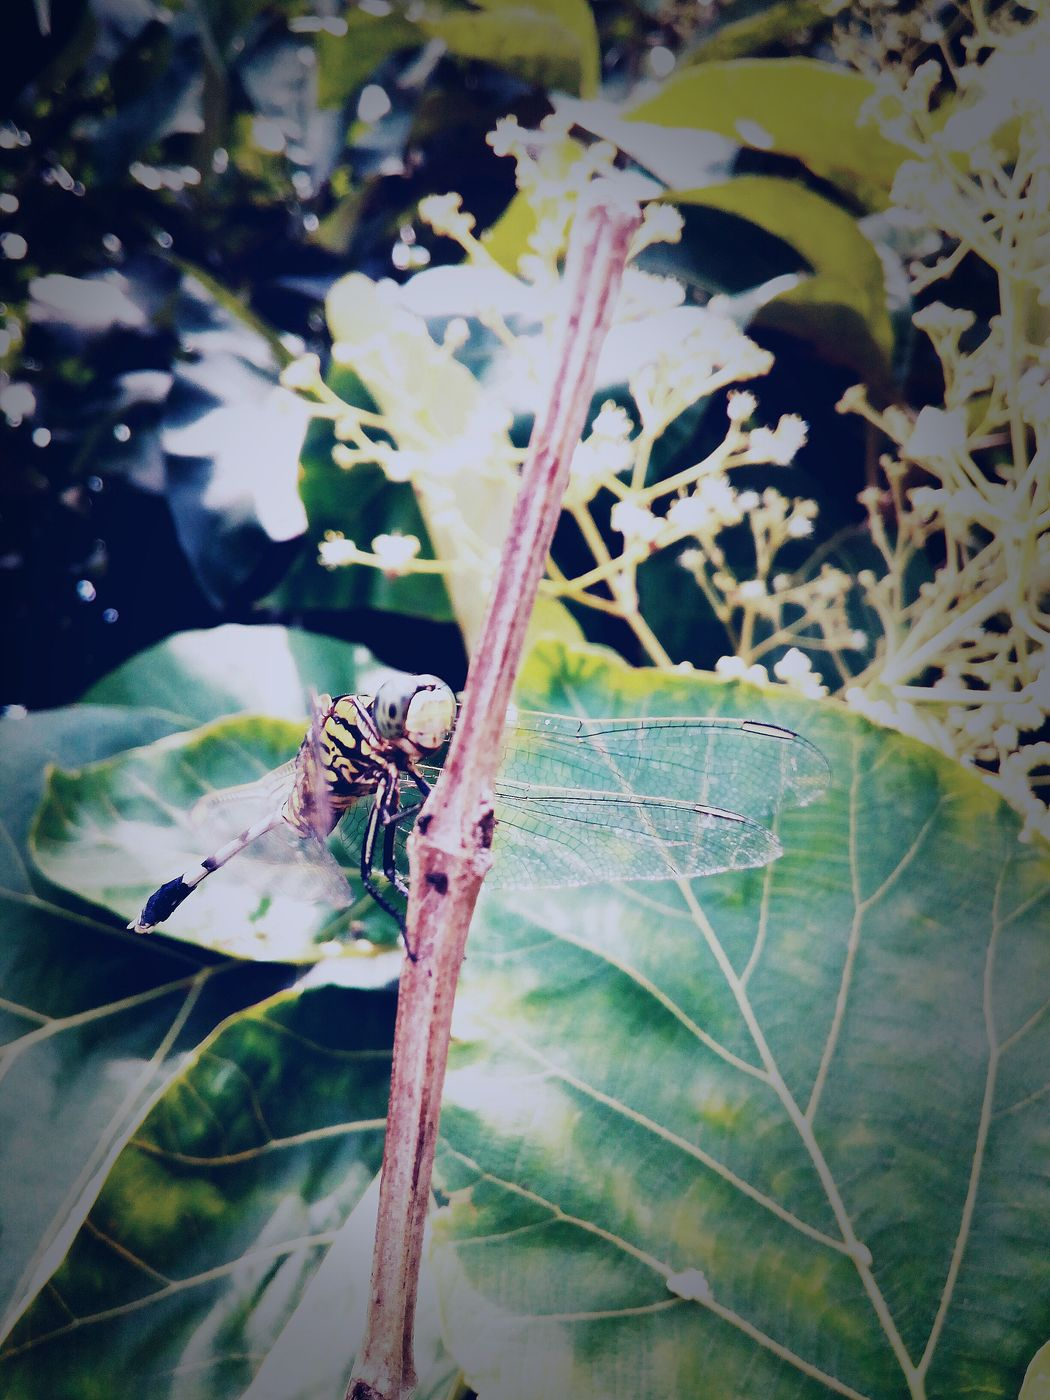 CreatureCreation Flies Must Live FlyHigh 8MP Photography Micromaxcanvas PhonePhotography CamuCamu Leaveschangingcolors Freshness Beauty In Nature Nature Morningclicks📷